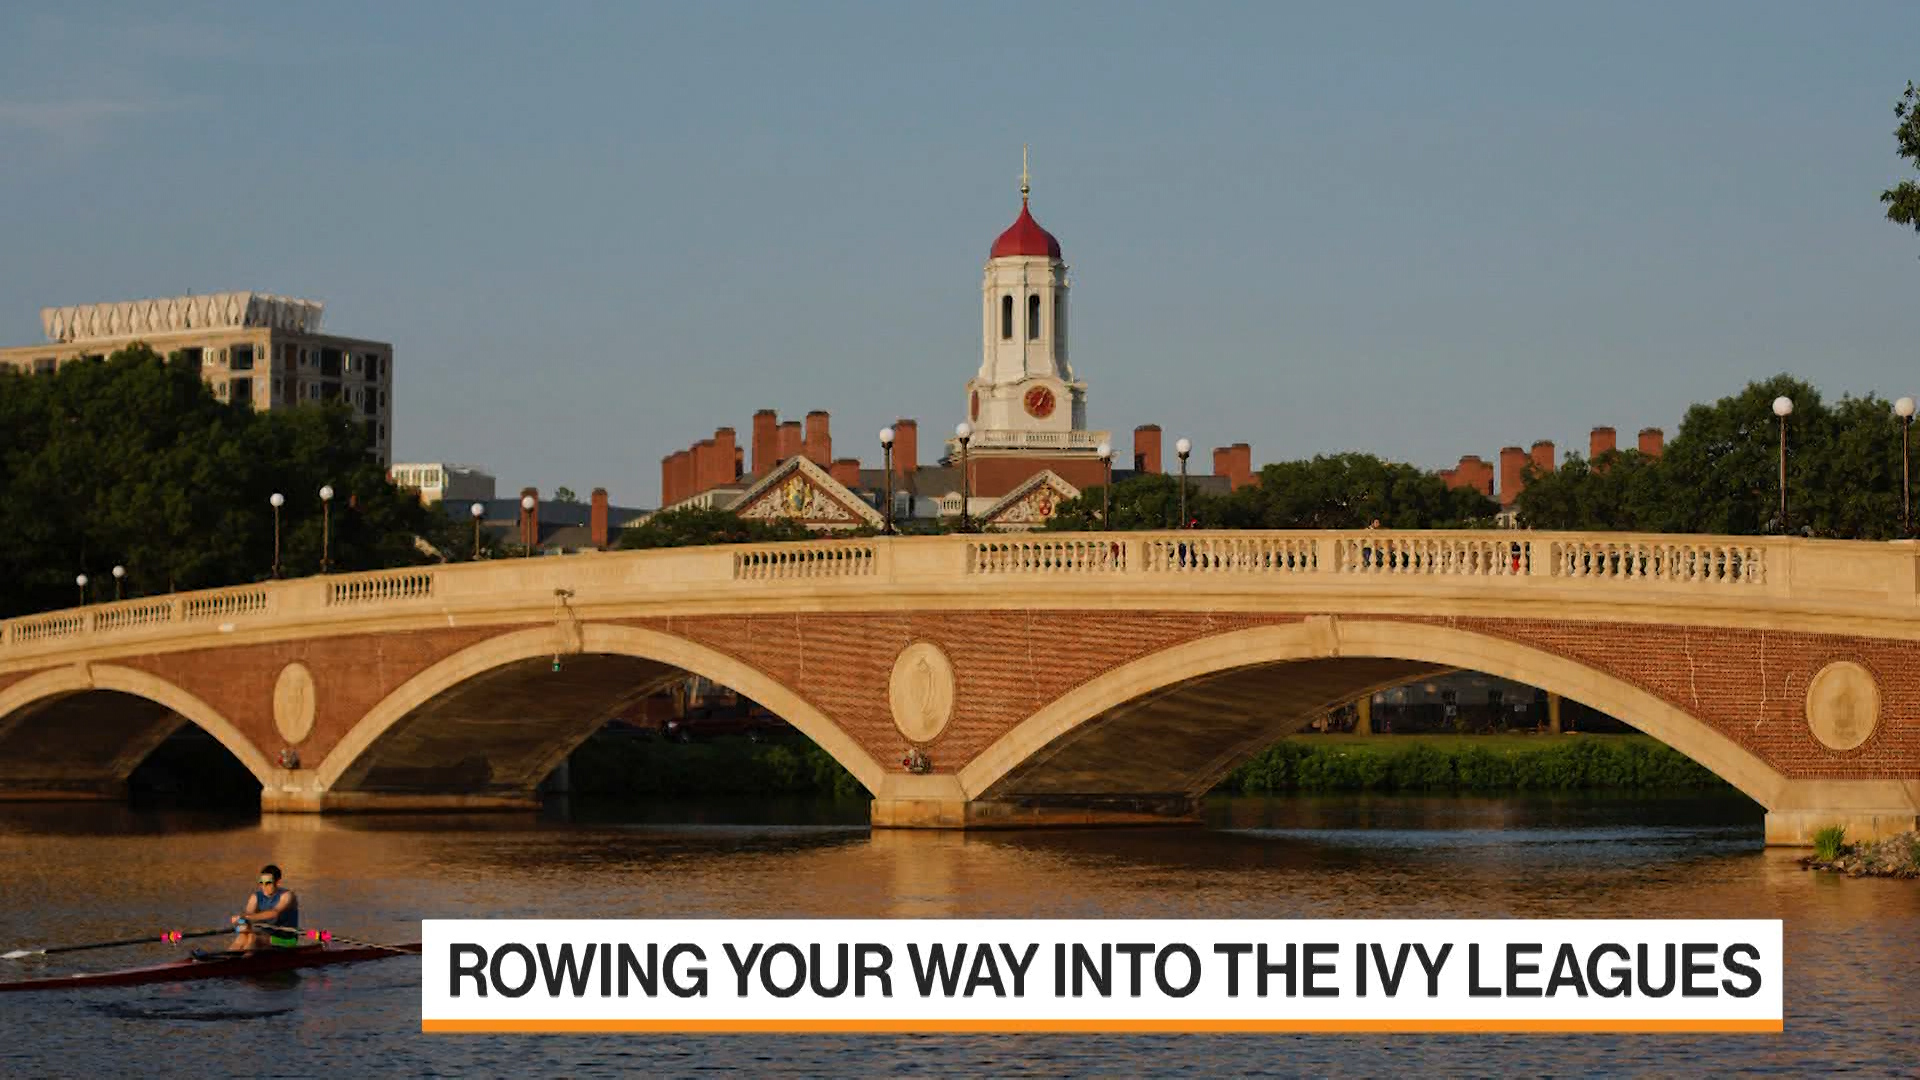 How to Get Into Ivy League School? Start With Crew, Golf